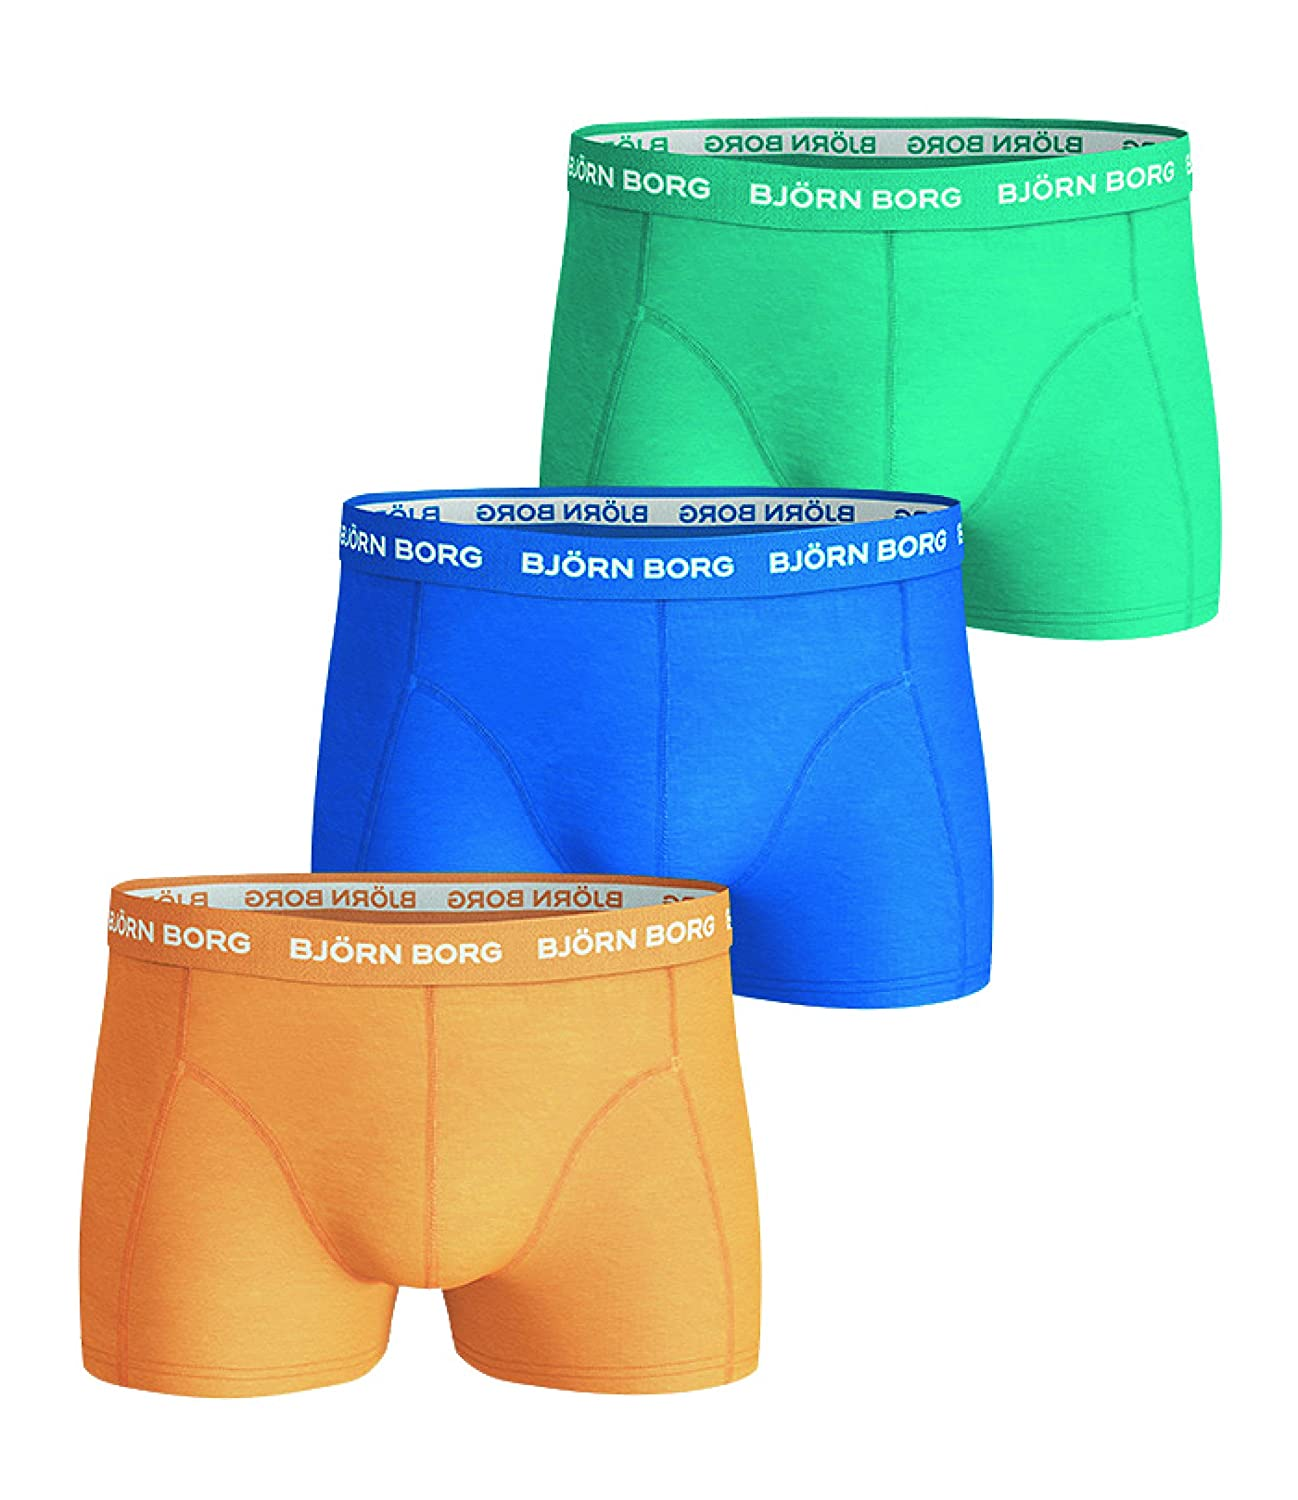 Bjorn Borg 3 Pack Boxers Seasonal Solids Turq Sky Yellow